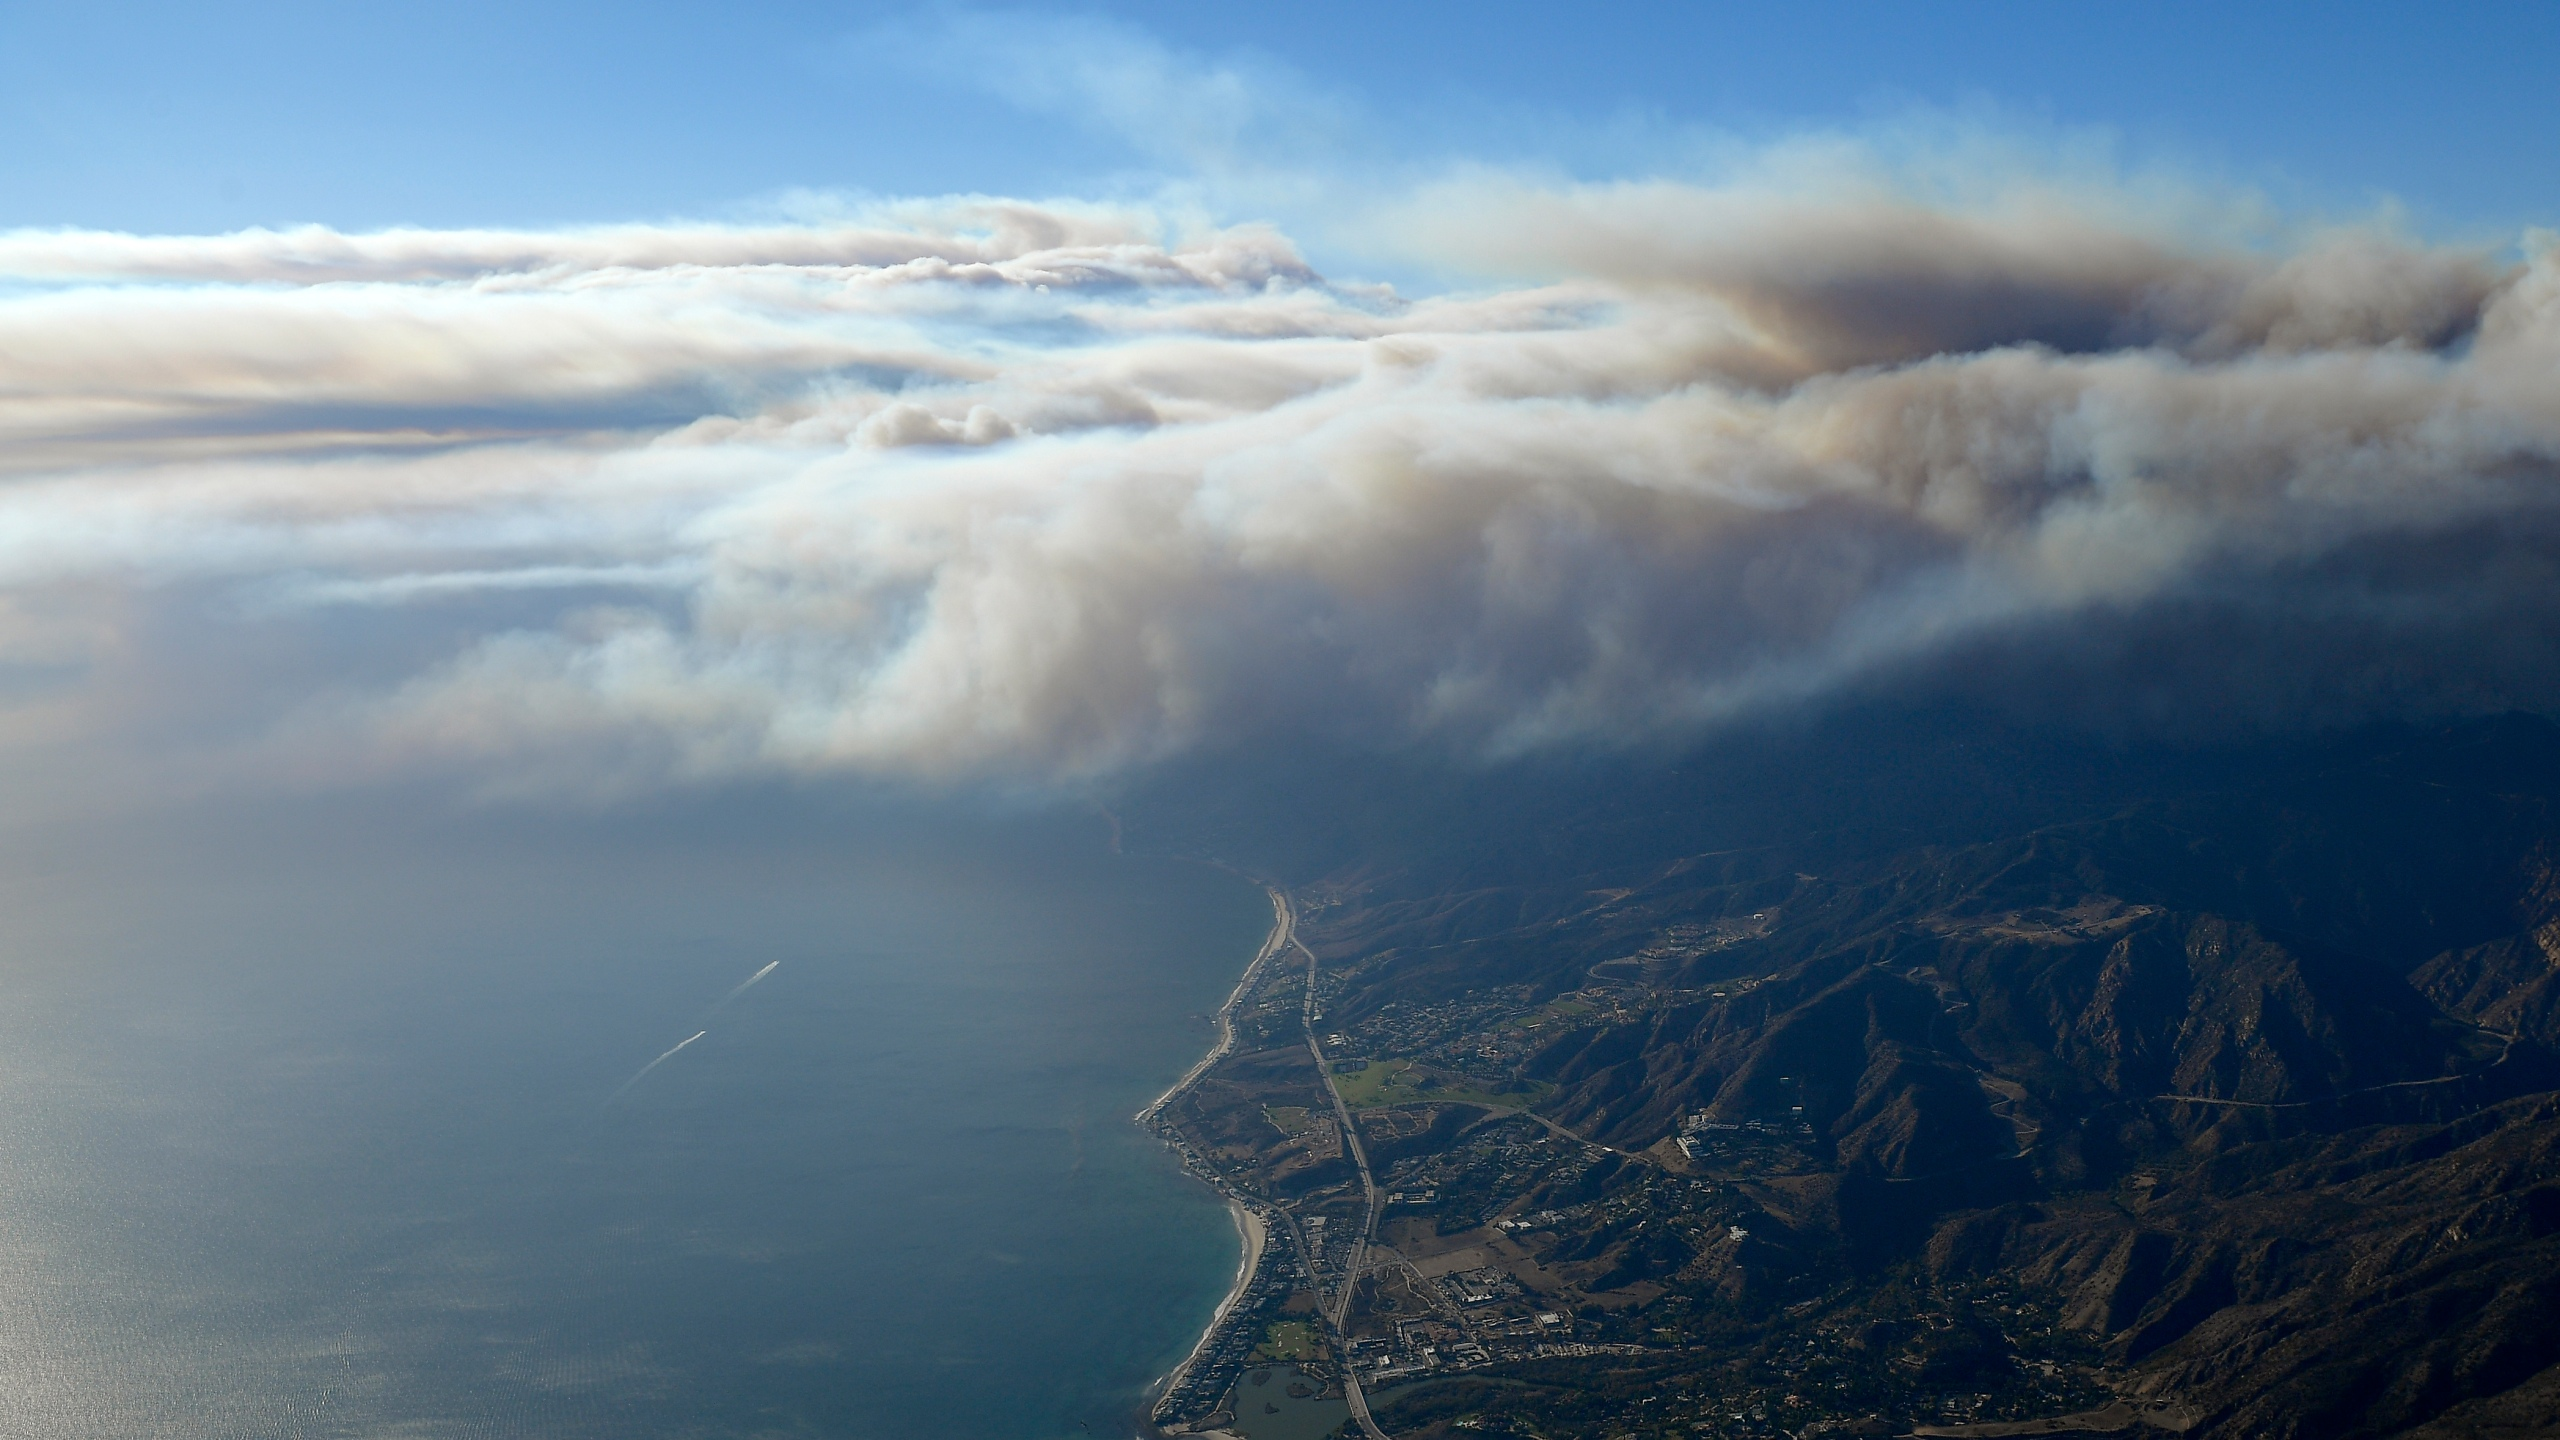 California_Wildfires_Photo_Gallery_45978-159532.jpg47152694